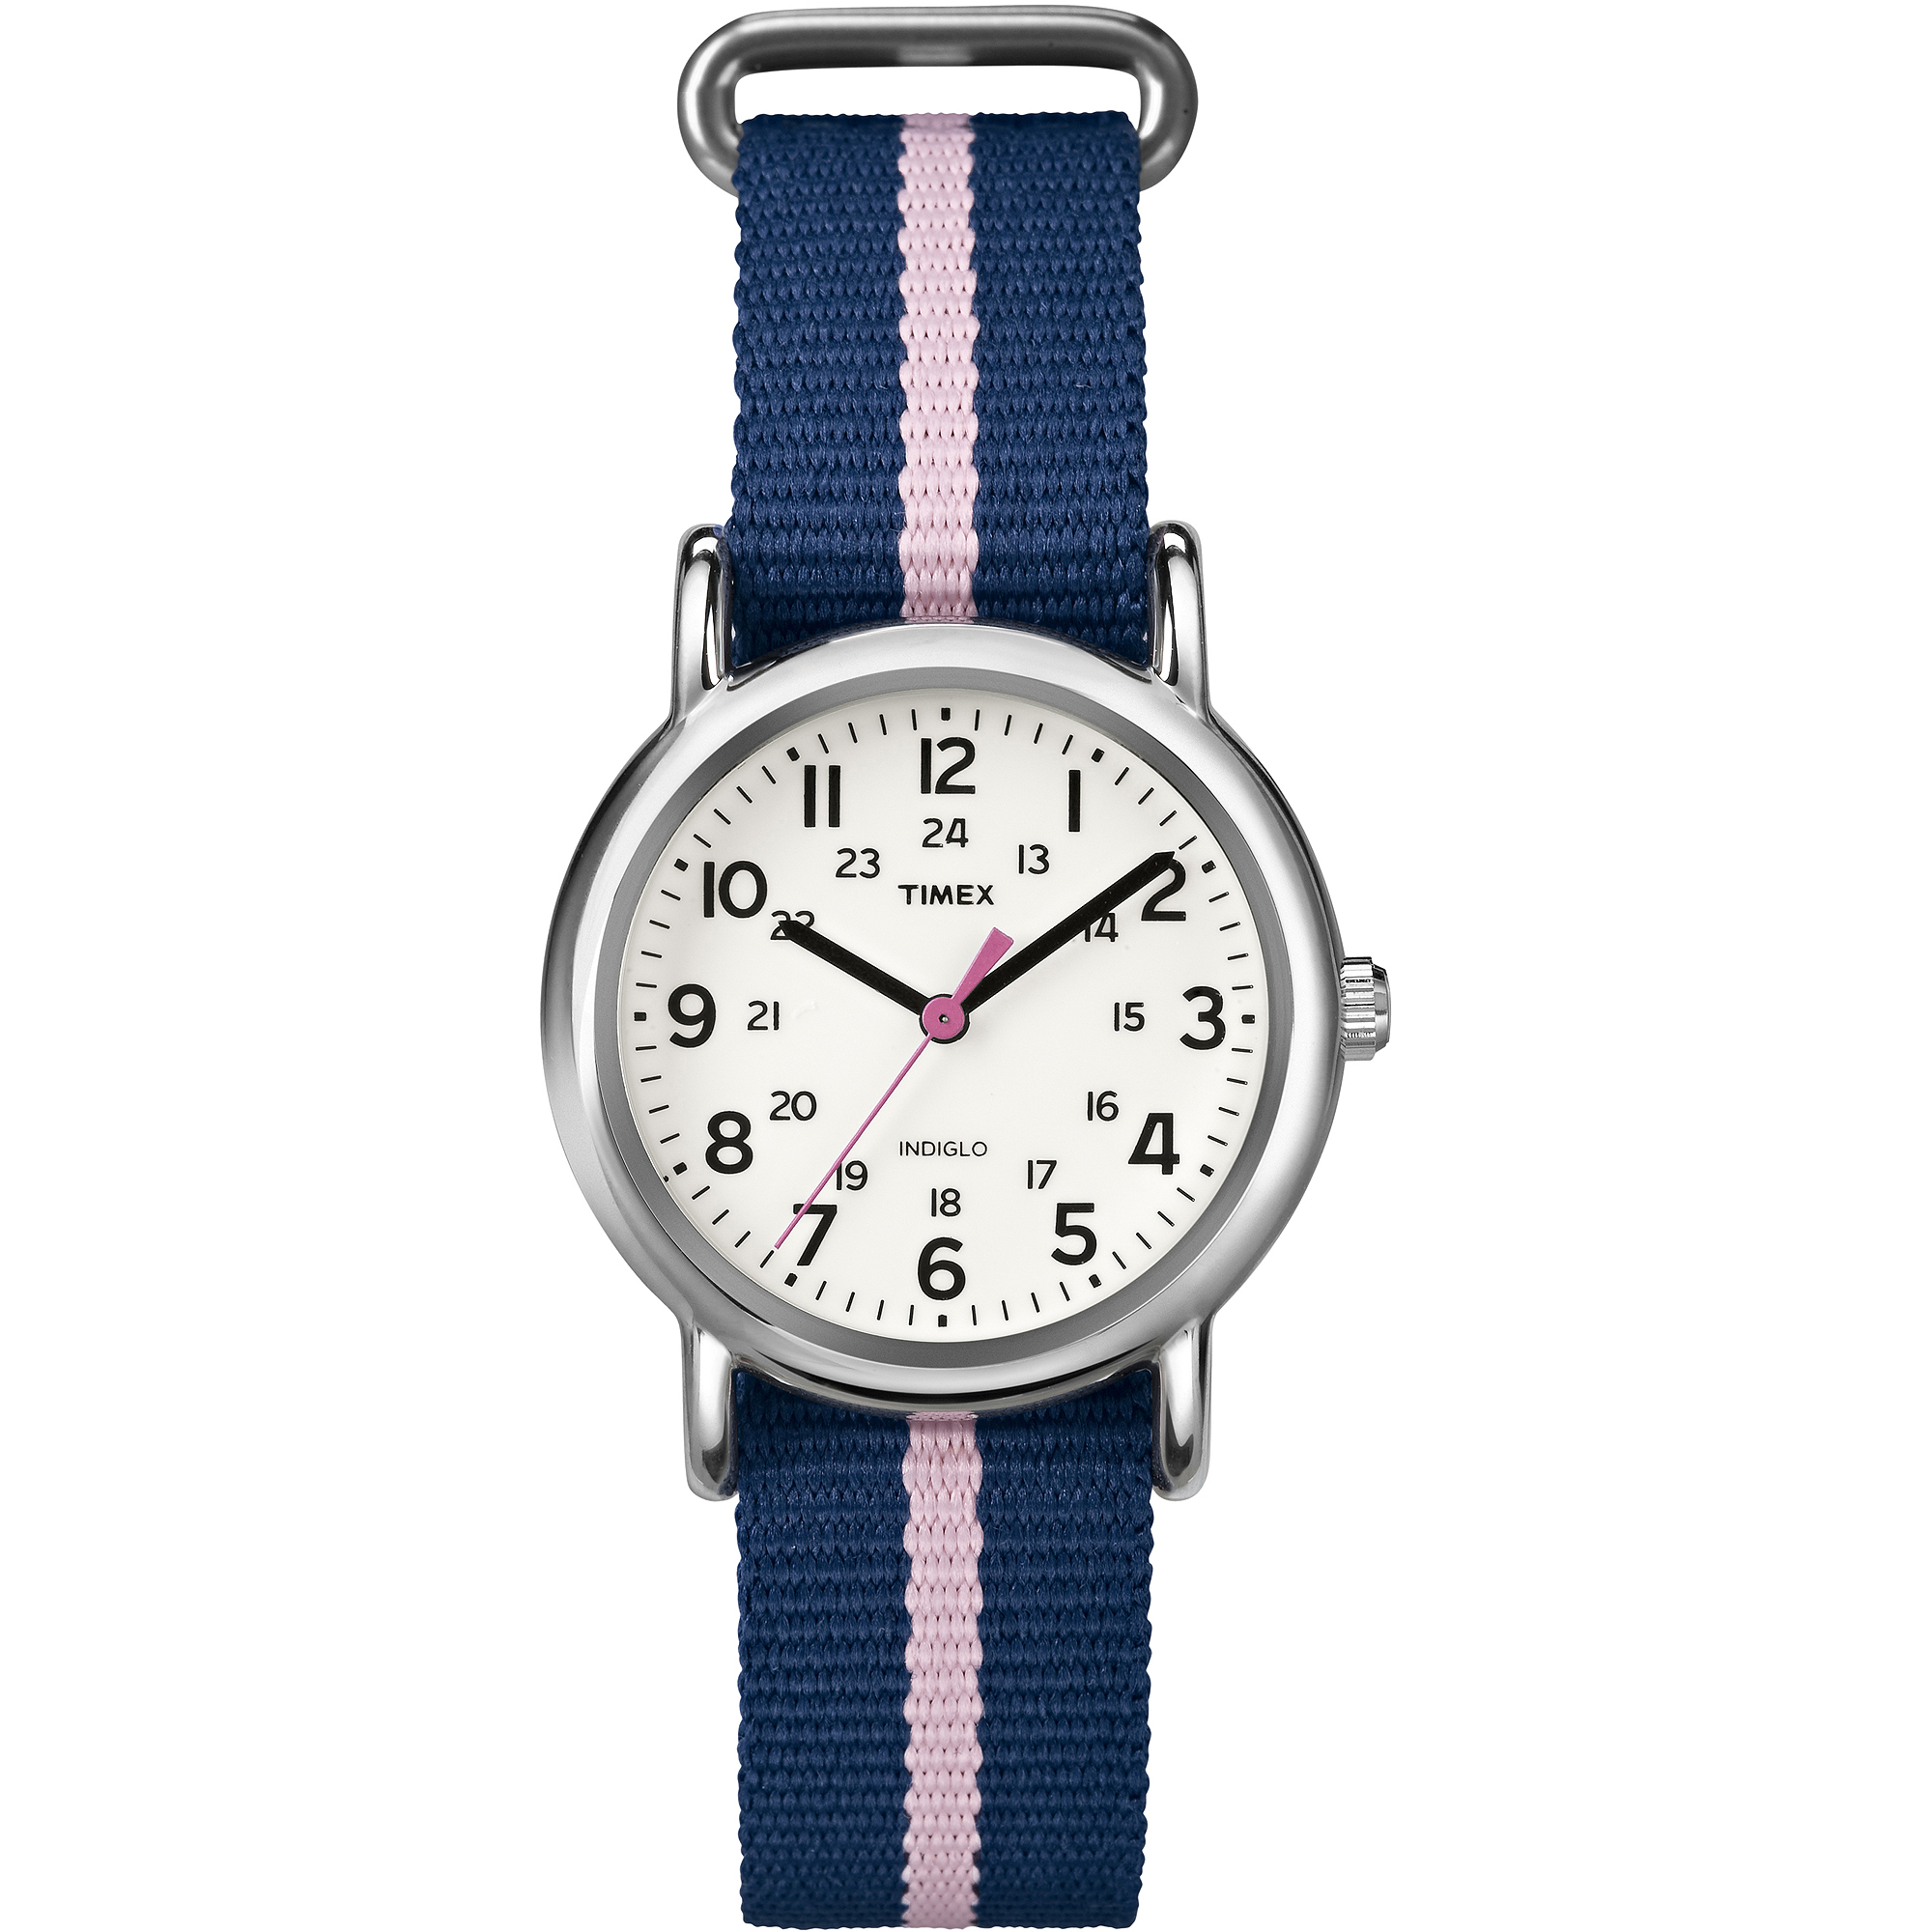 Timex Women's Weekender Watch, Blue and Pink Nylon Strap